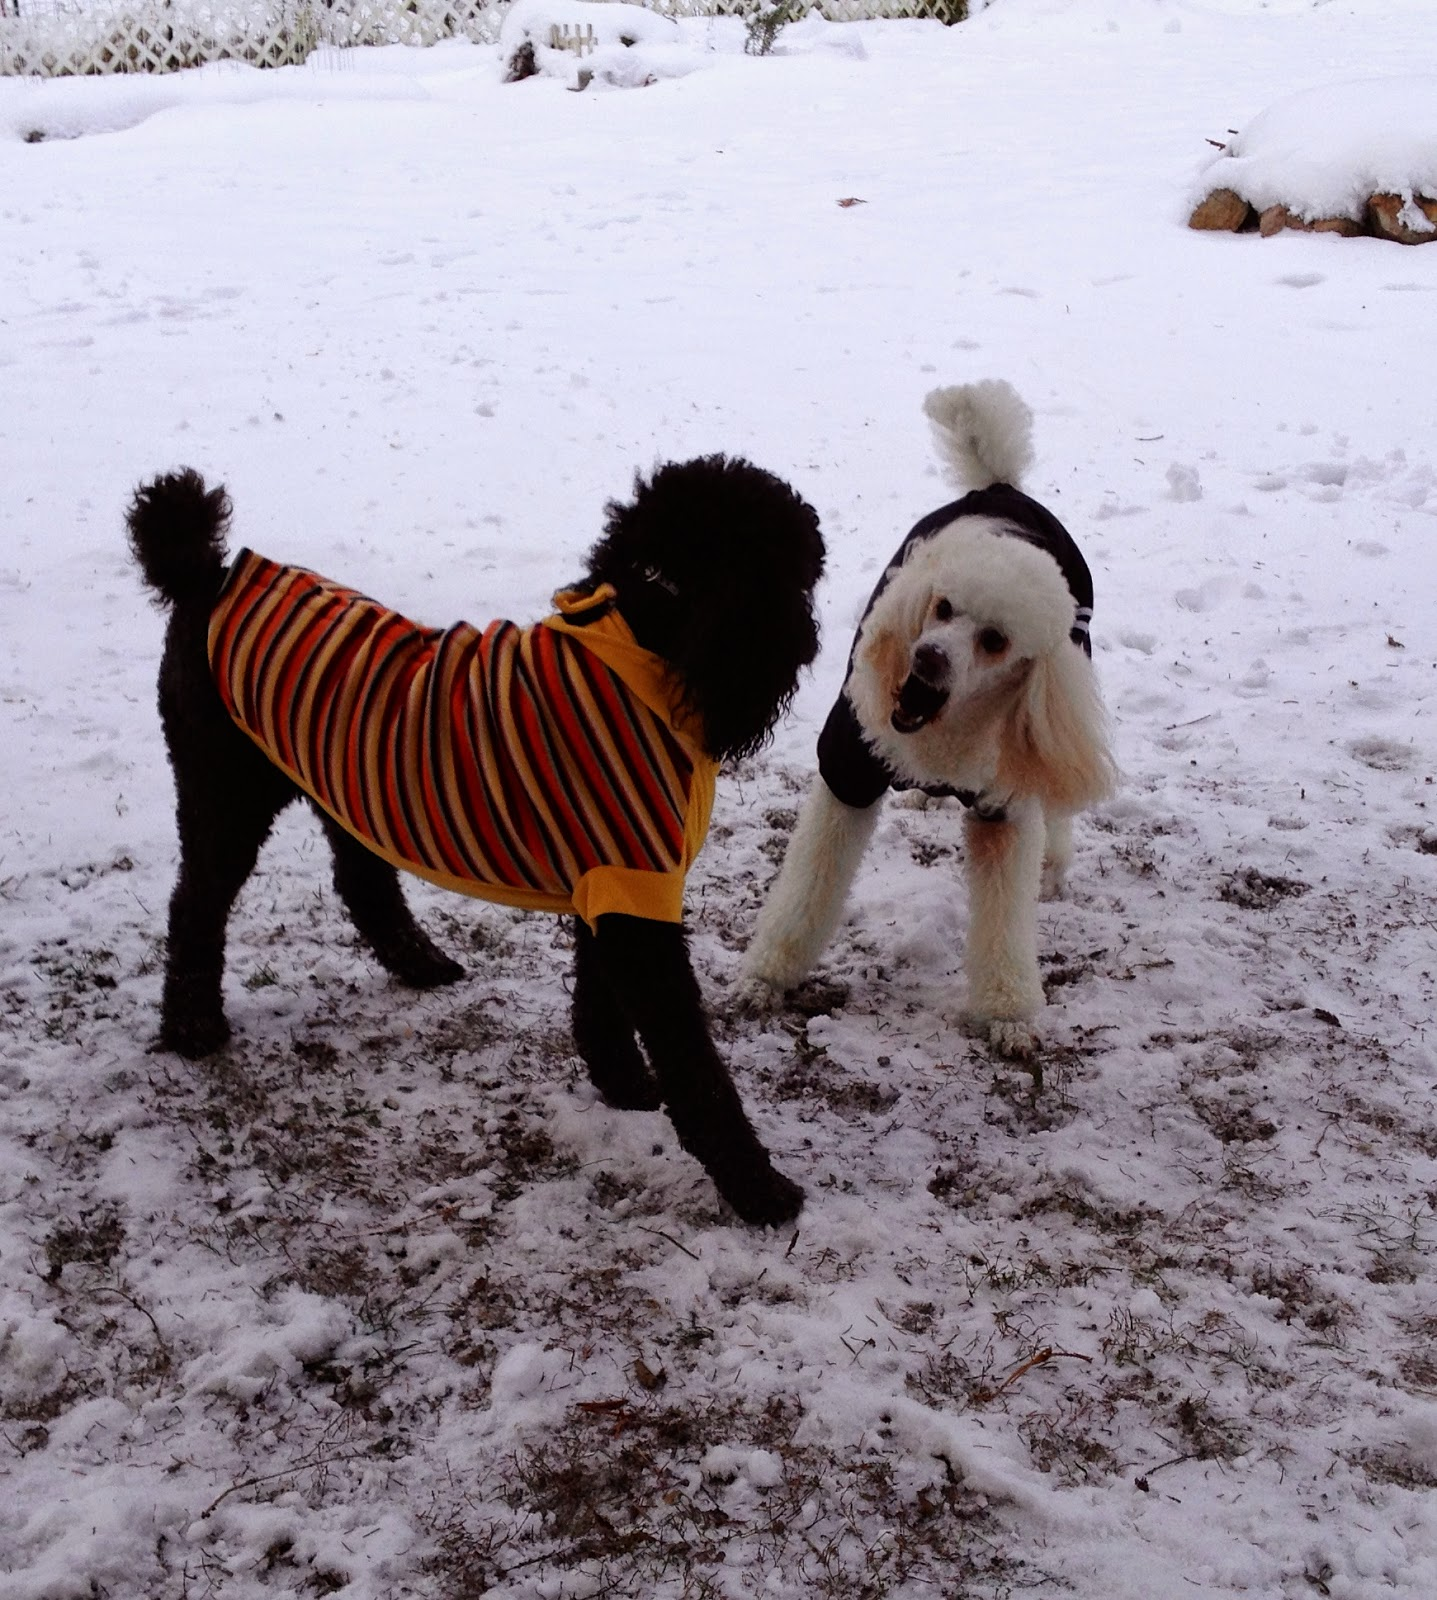 Playing poodles in the cold snow